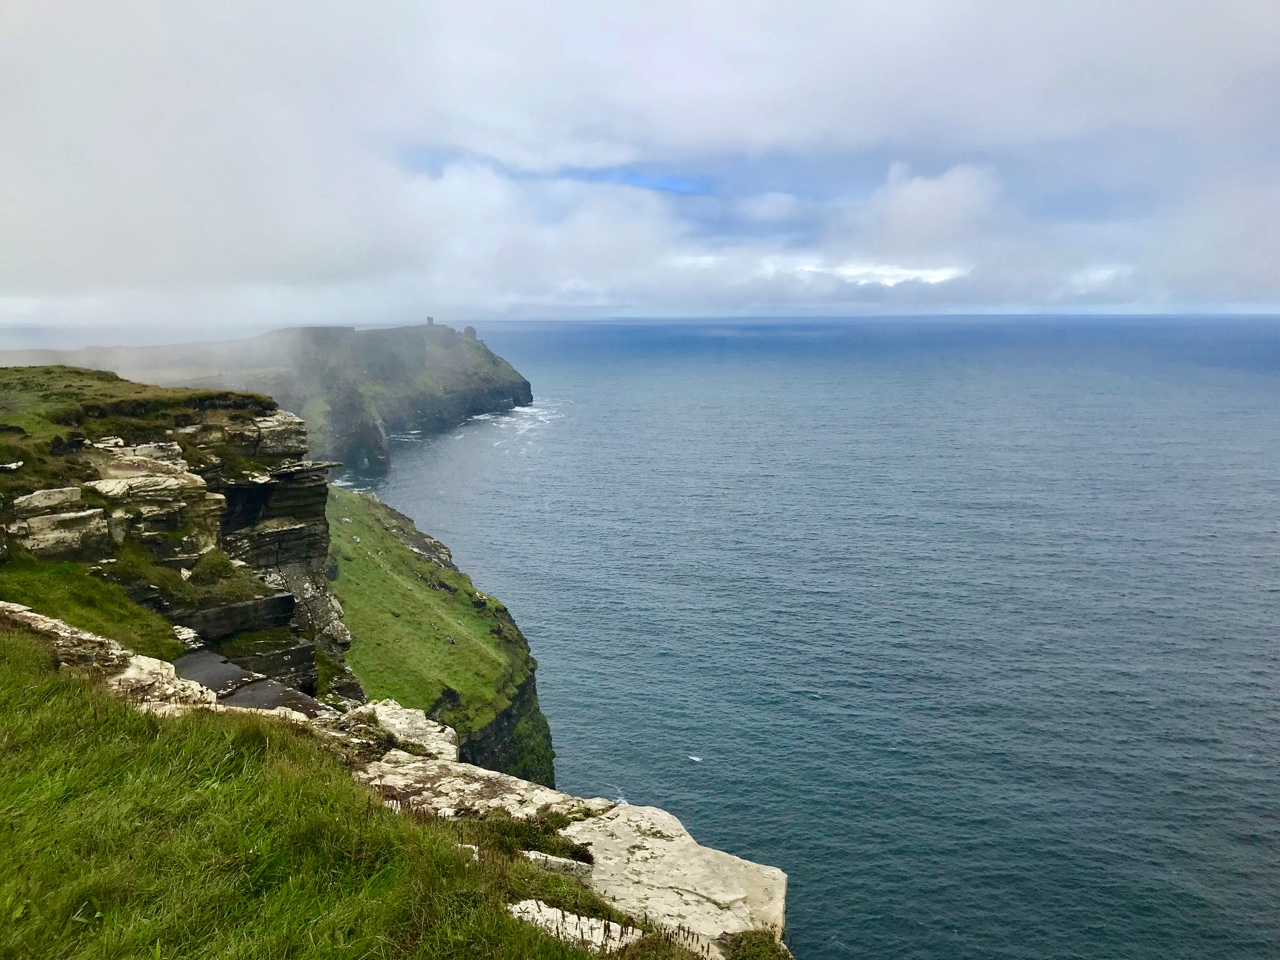 Cliffs of Moher, Doolin, Ireland